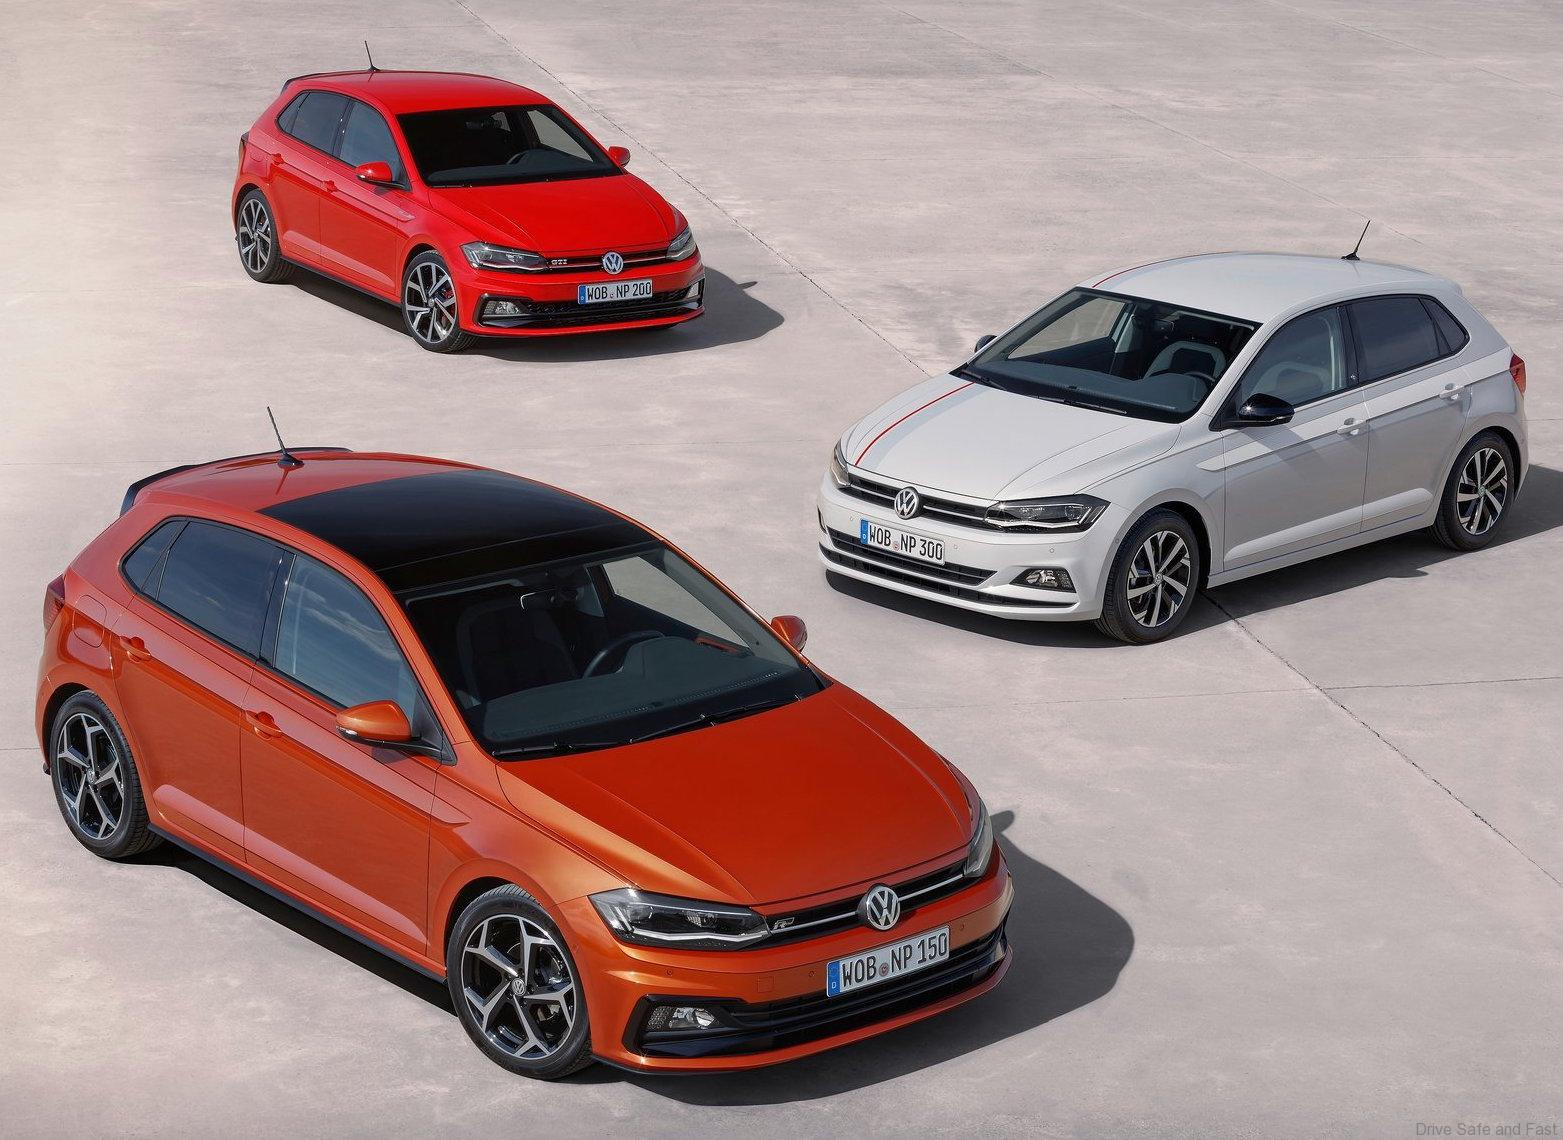 With More Than 14 Million Units Sold, It Is One Of The Worldu0027s Most  Successful Compact Cars: The Volkswagen Polo. Now A Completely New  Generation Of The ...